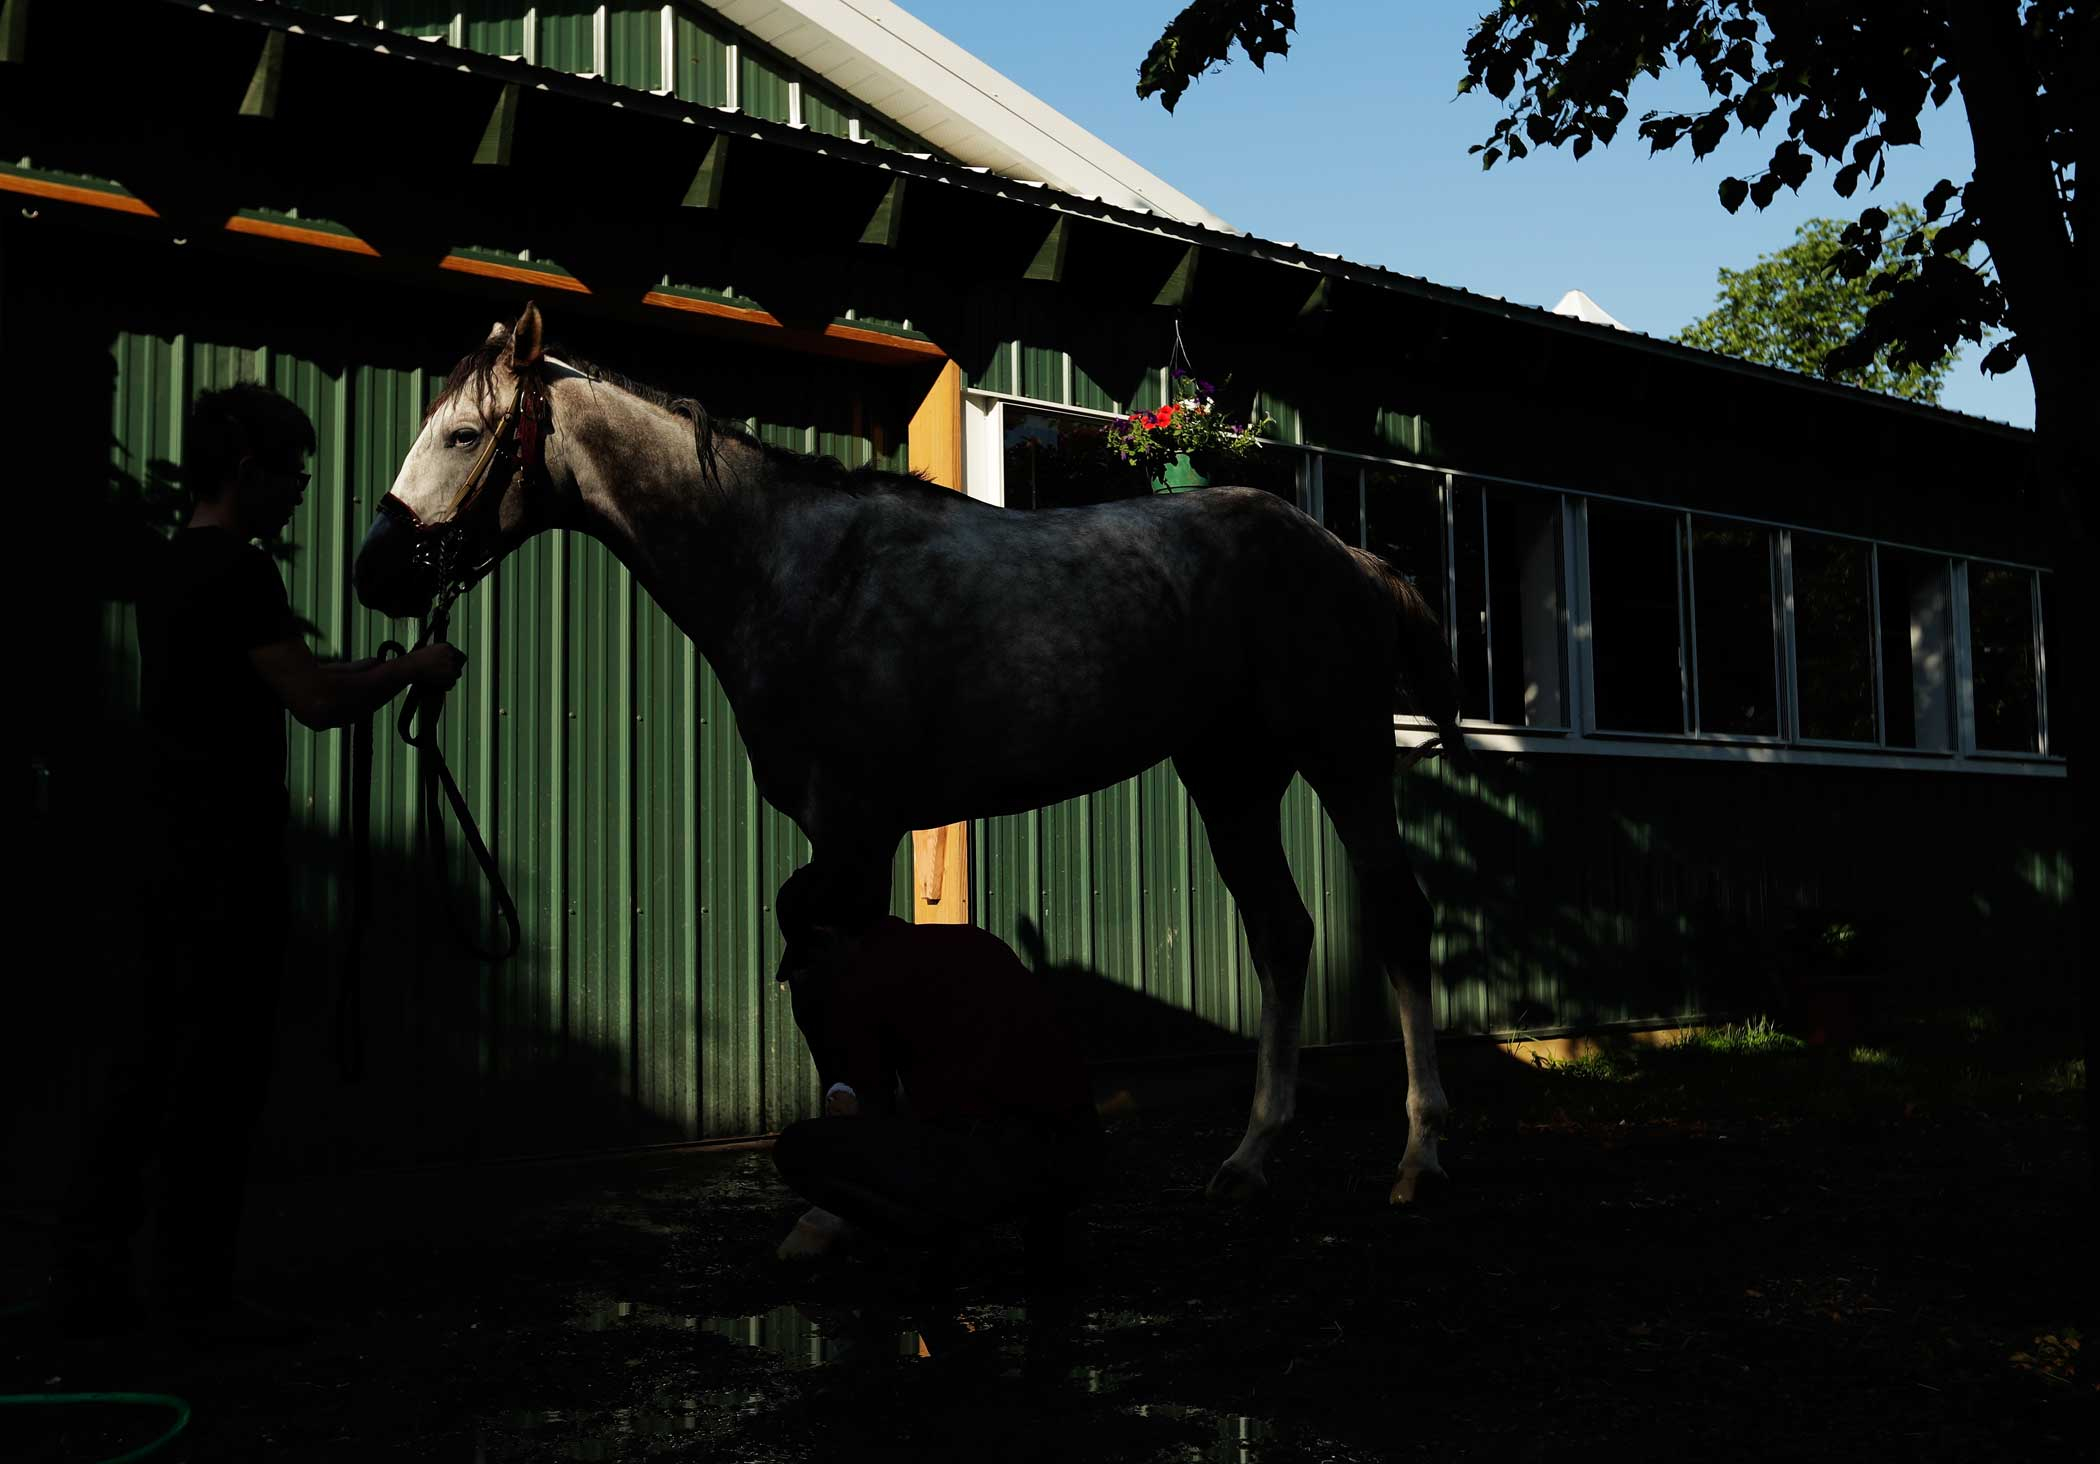 Belmont Stakes Contender Lani looks on after a training session prior to the 148th running of the Belmont Stakes at Belmont Park on June 6, 2016 in Elmont, New York.